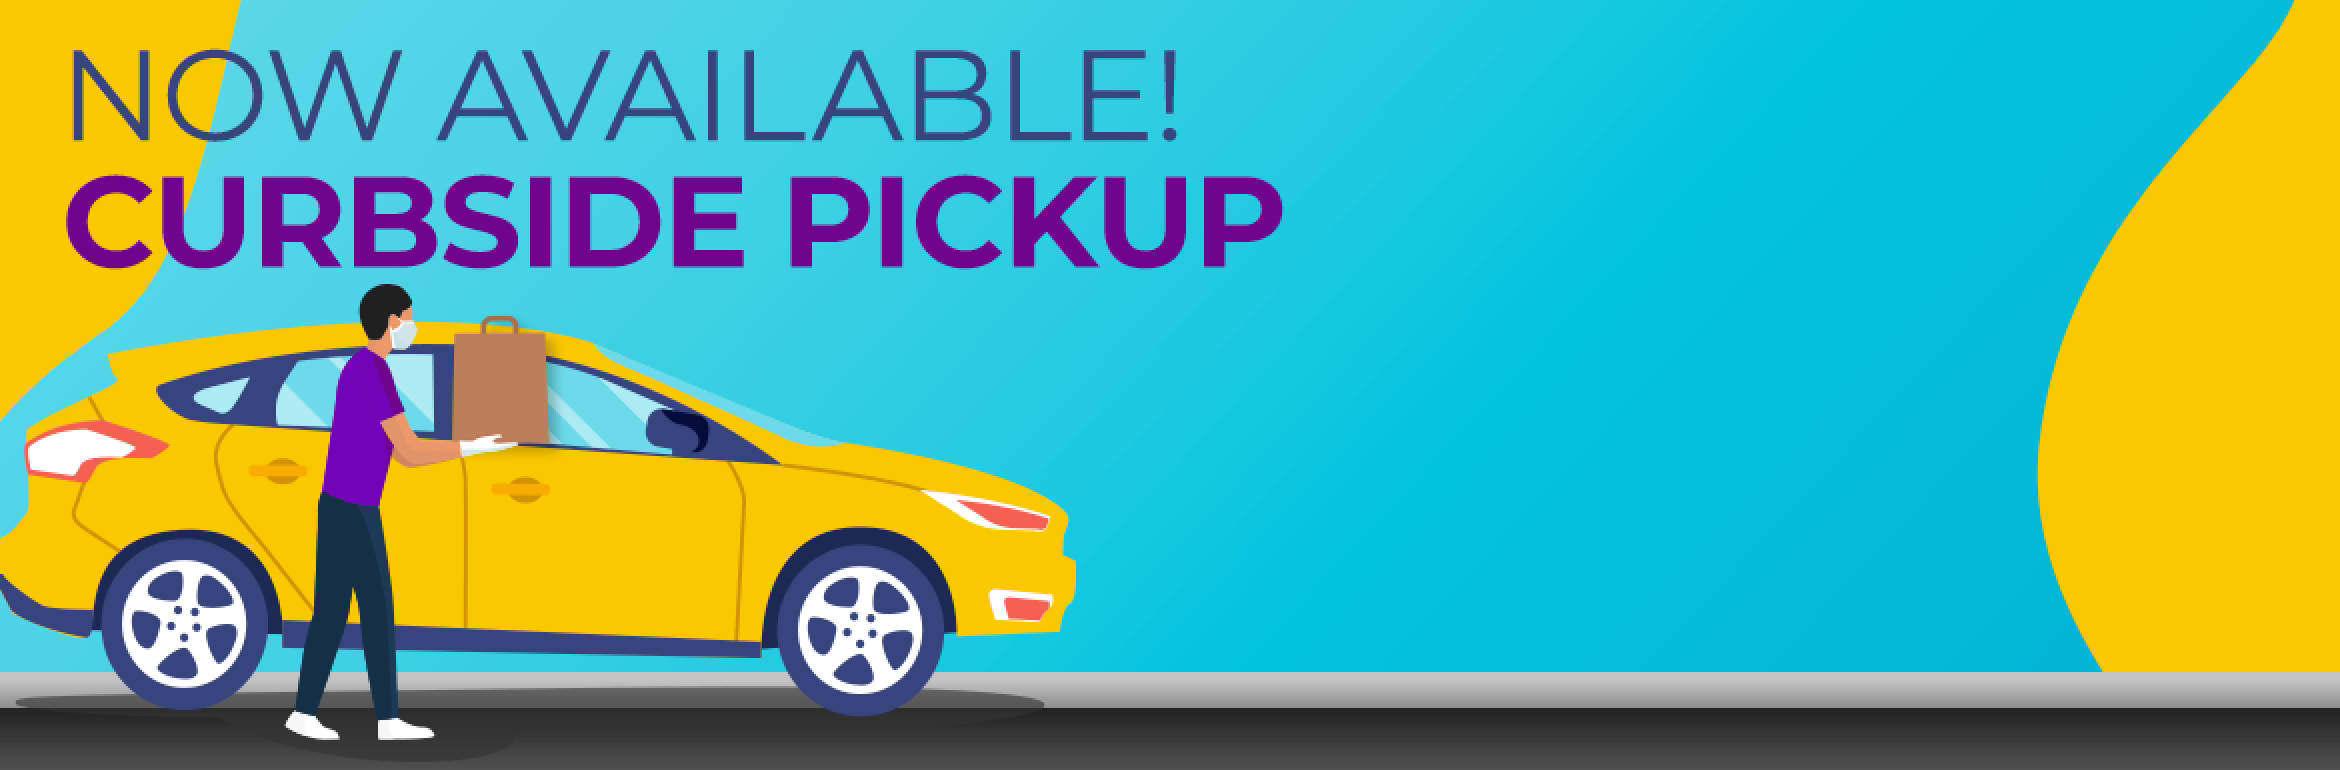 Now available! Curbside pickup